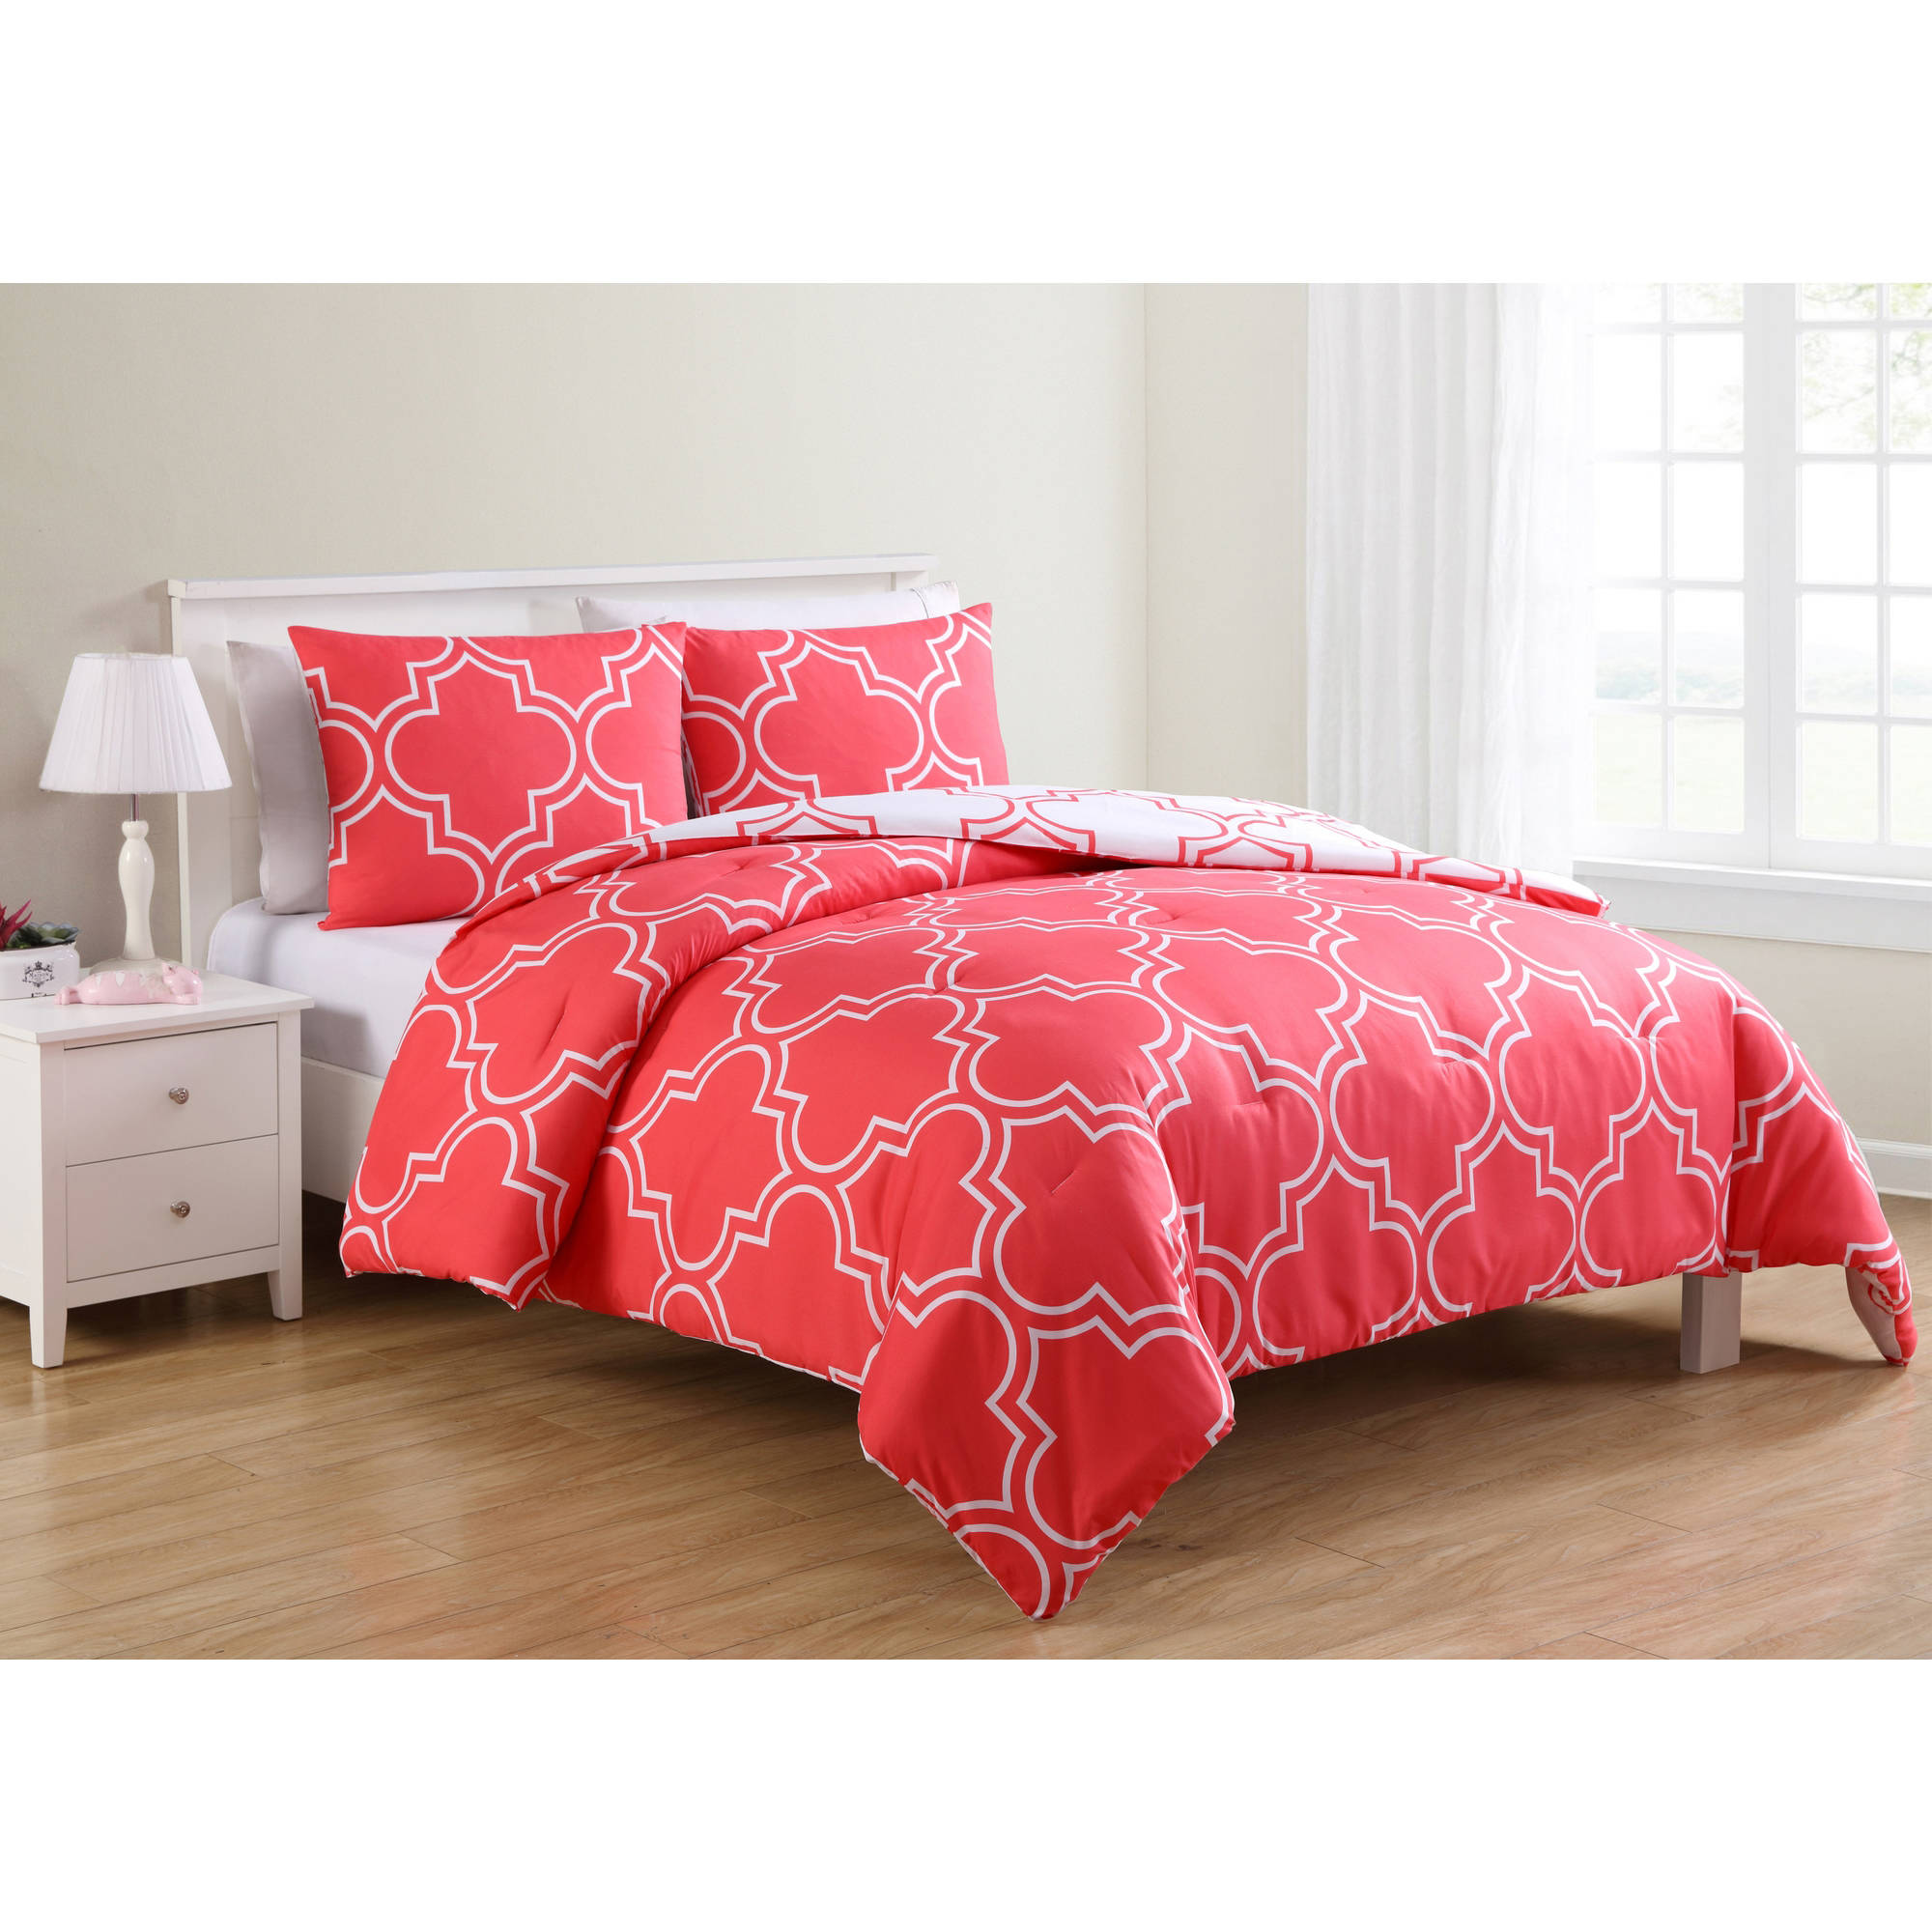 VCNY Home Coral Gia Quatrefoil Printed 2/3 Piece Reversible Bedding Comforter Set, Shams Included